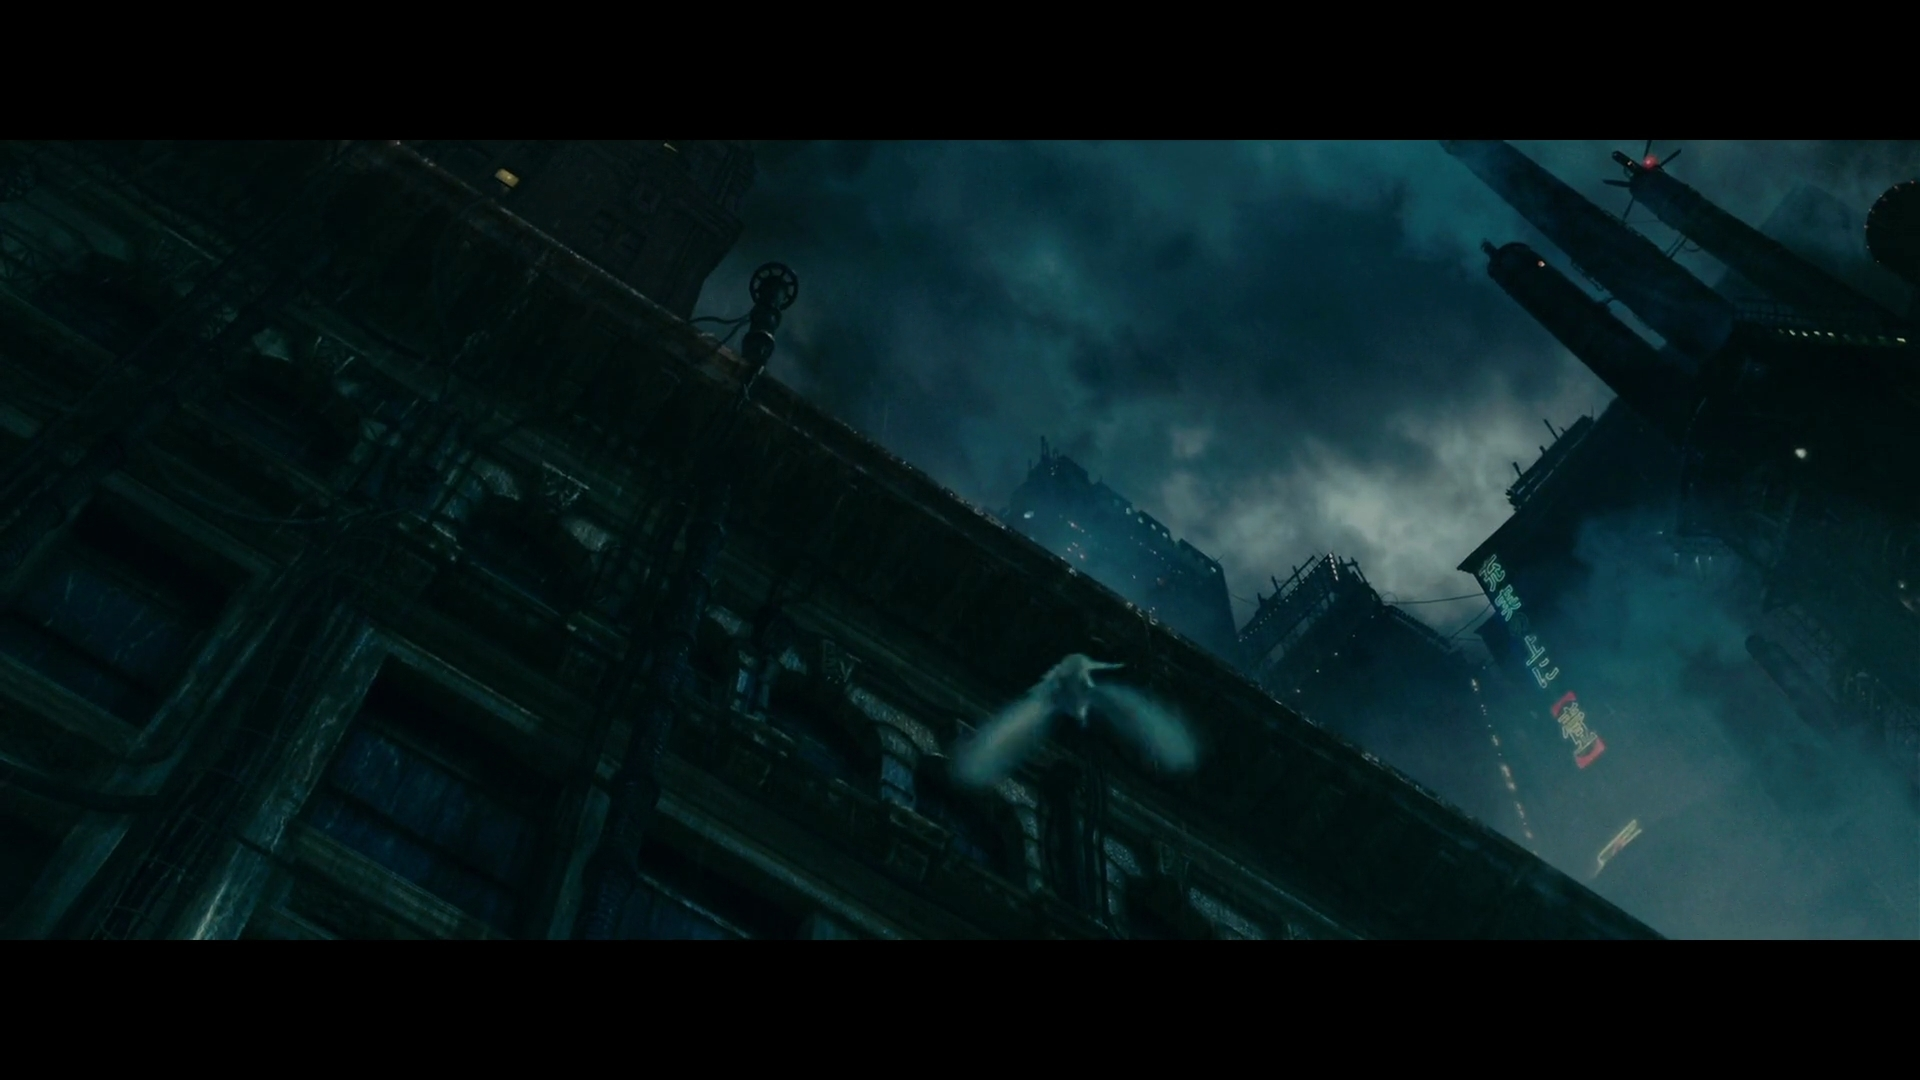 bladerunner dark dove Op HD Wallpaper